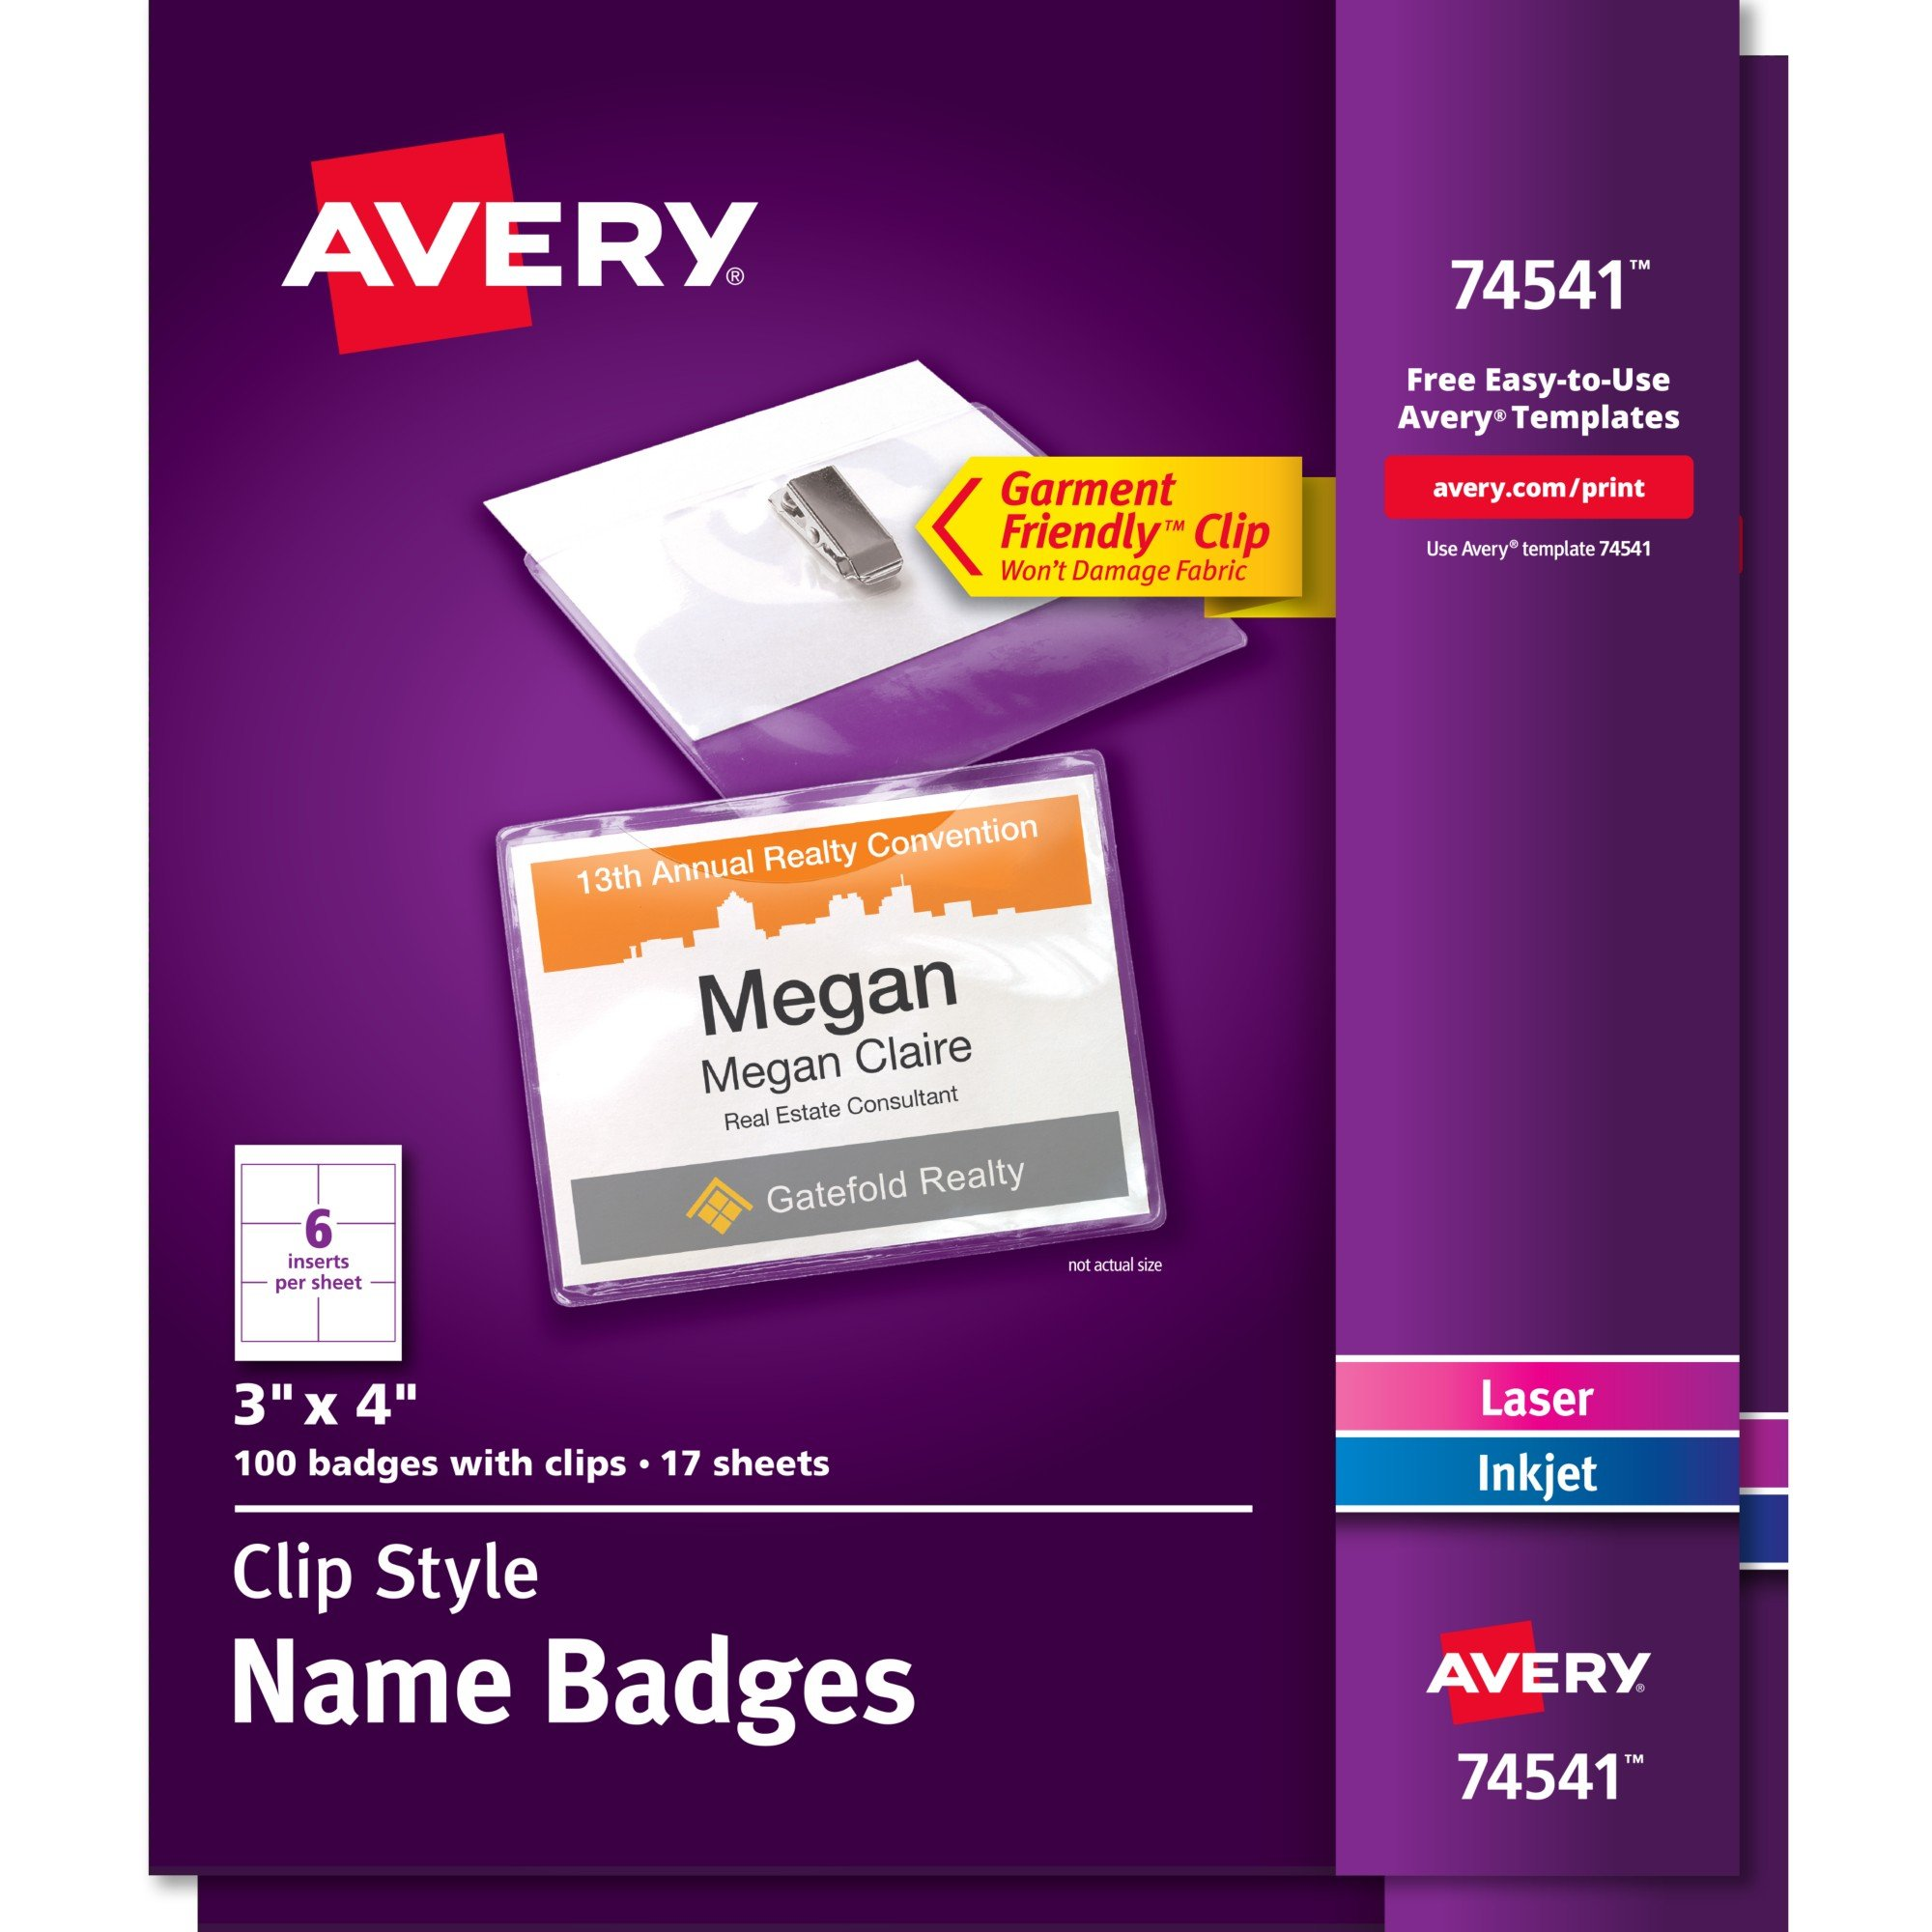 Avery Top-Loading Garment-Friendly Clip-Style Name Badges, 3'' x 4'', 100 Badges, Pack of 2 (74541)